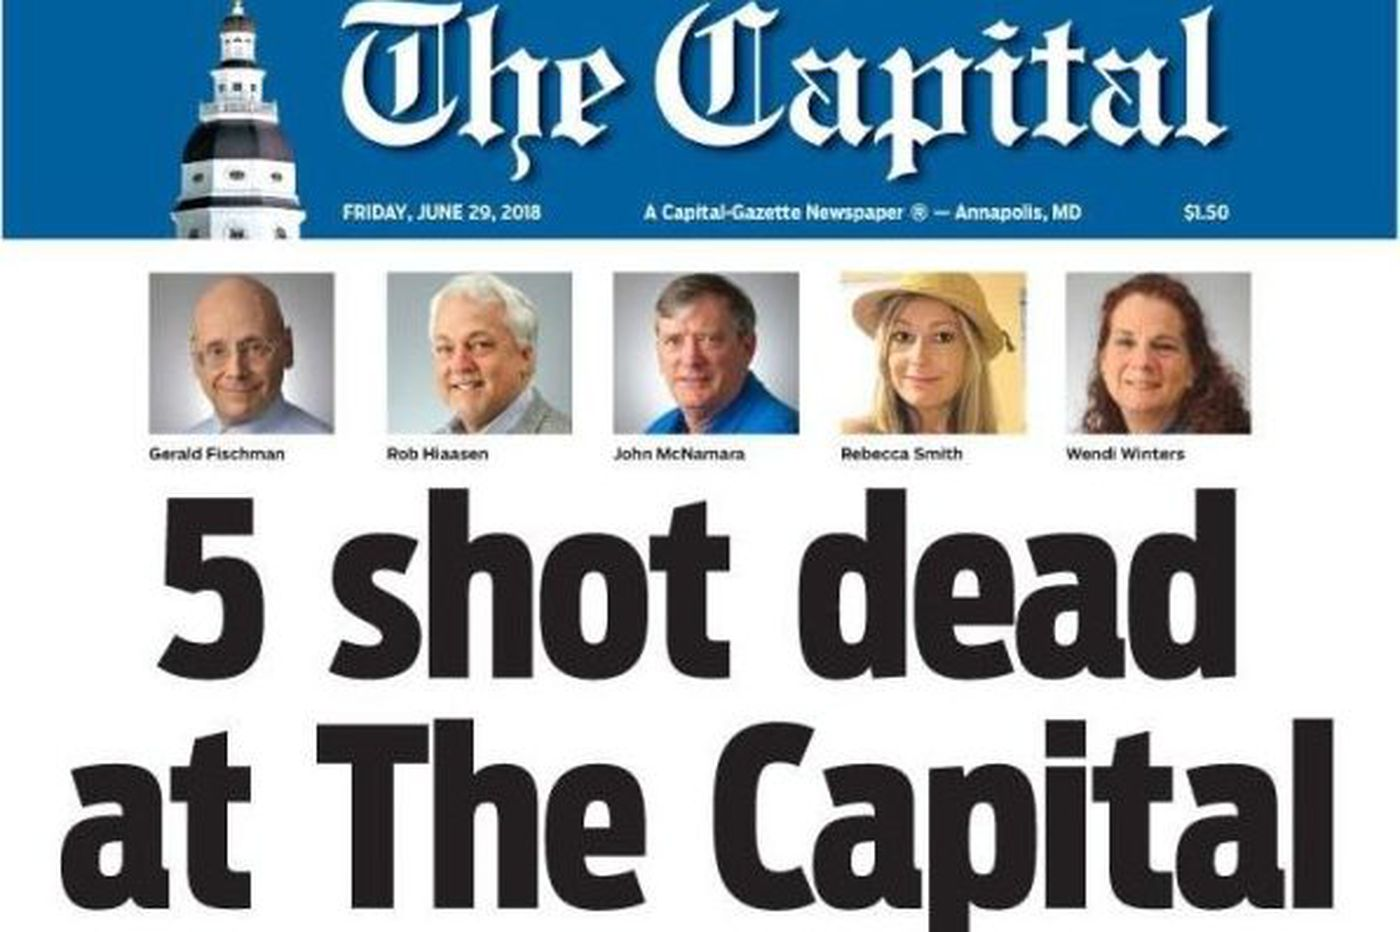 Capital Gazette shooting: What we know, the latest